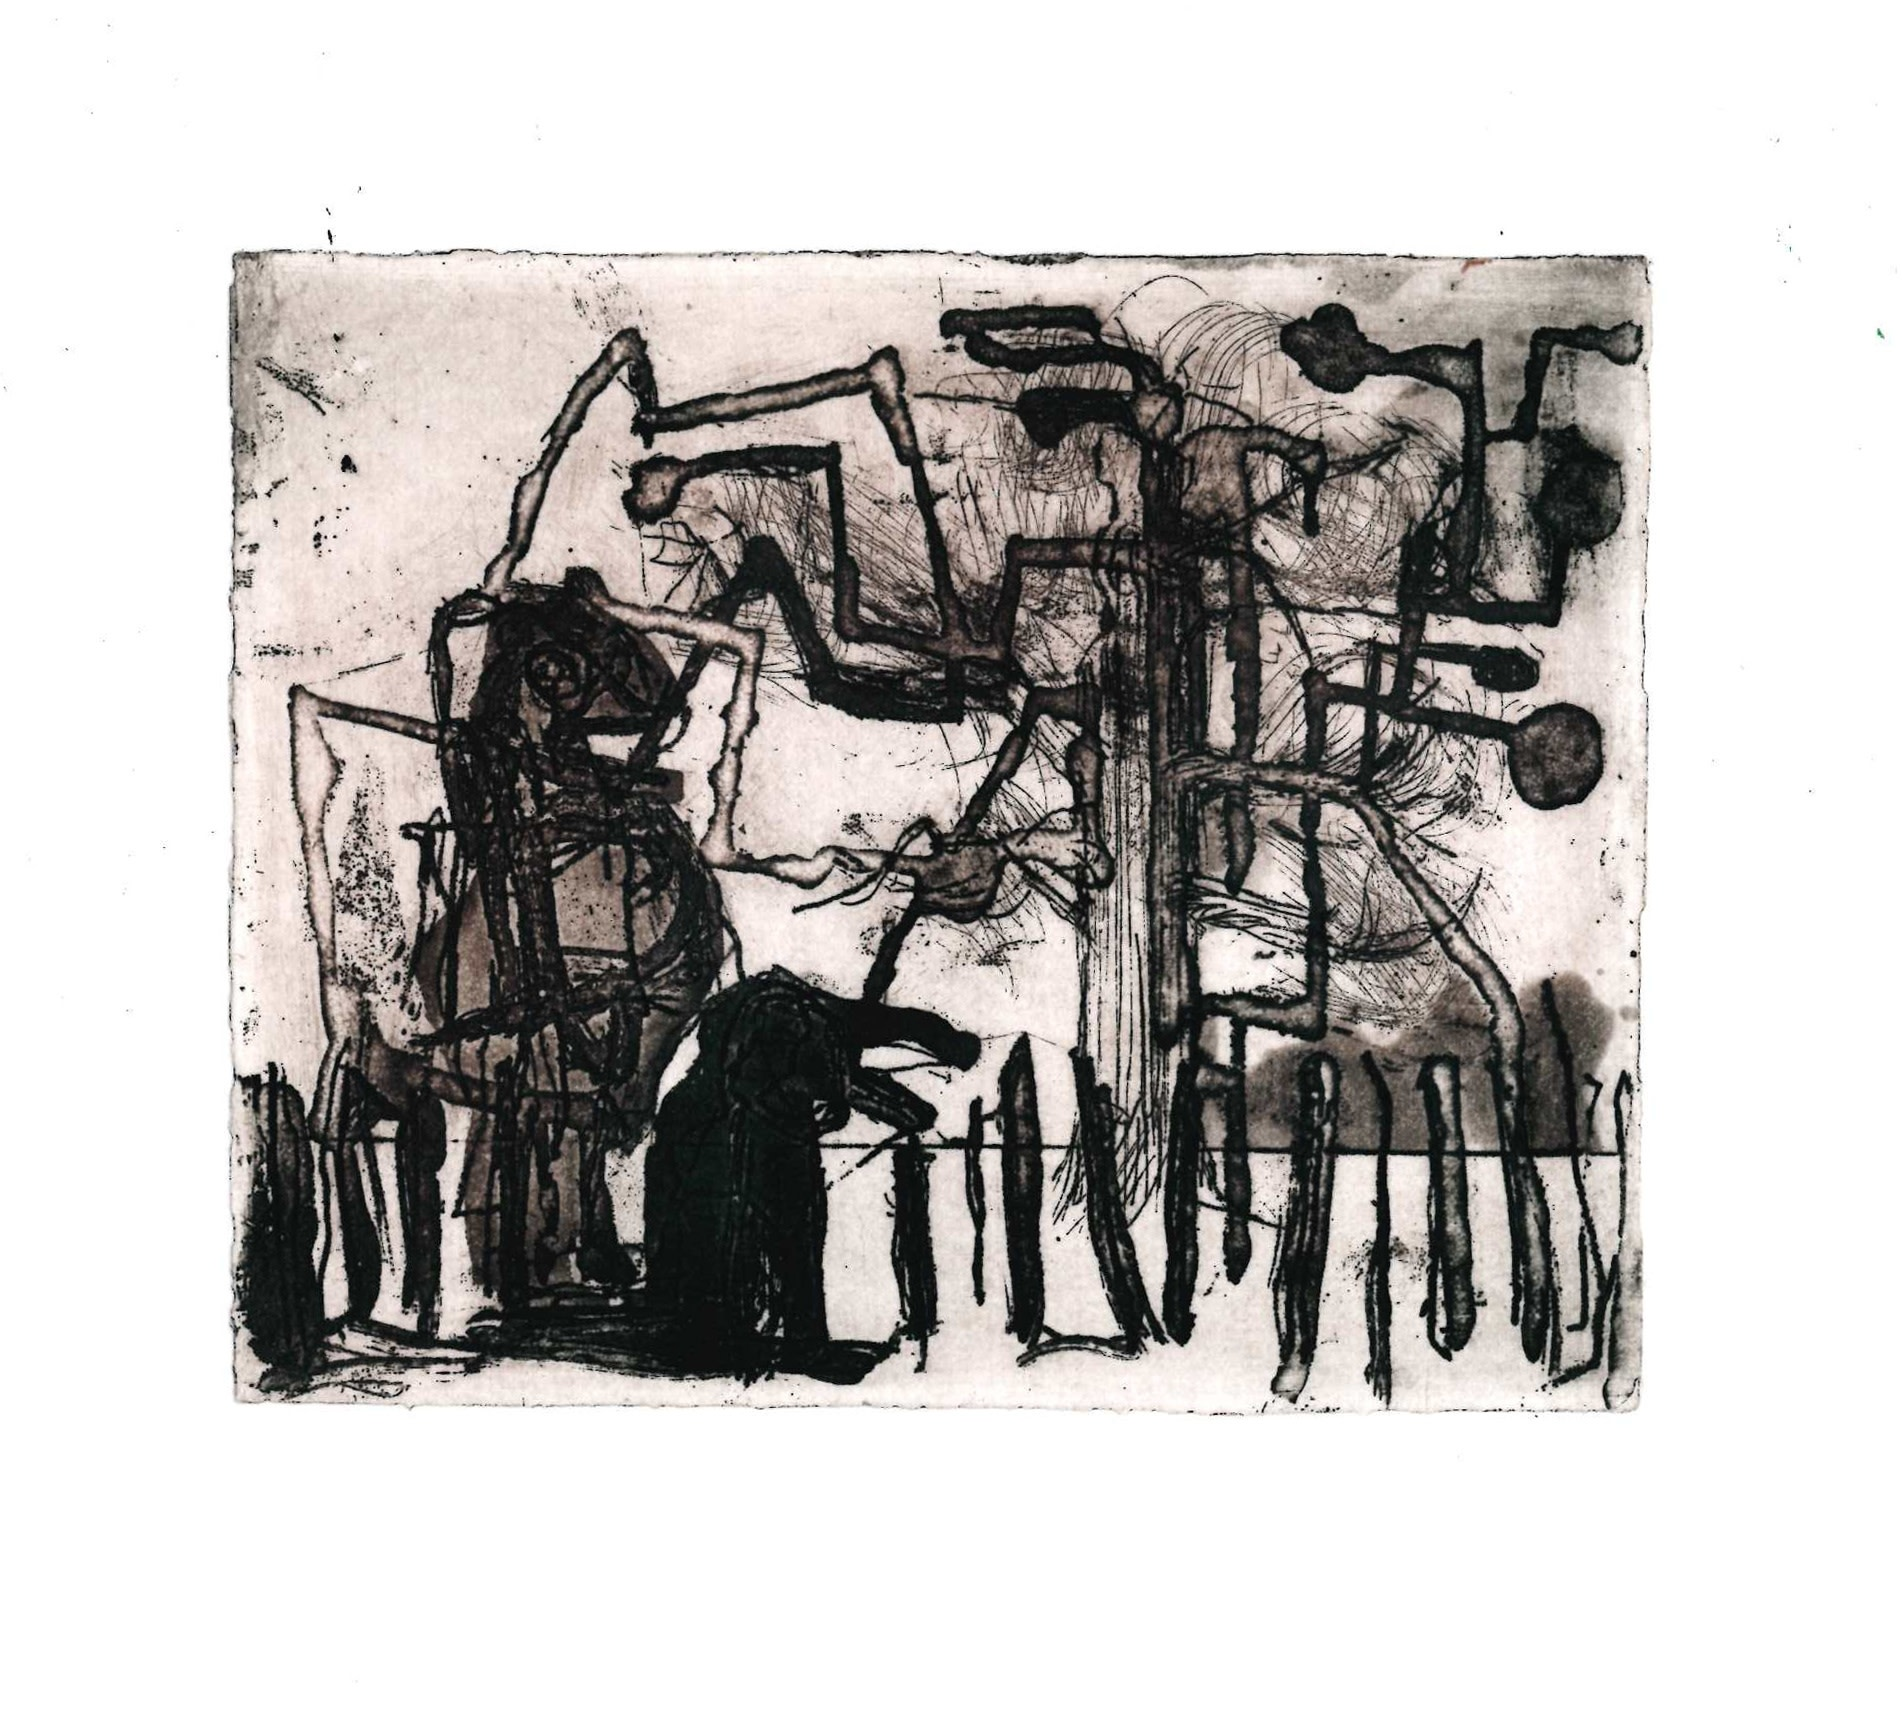 """<span class=""""link fancybox-details-link""""><a href=""""/exhibitions/17/works/image_standalone826/"""">View Detail Page</a></span><p><strong>Emma Wood</strong></p><p>Reflection with Dog</p><p>etching, ed of 20</p><p>24 x 23cm</p><p>£125 framed</p><p>£90 unframed</p>"""